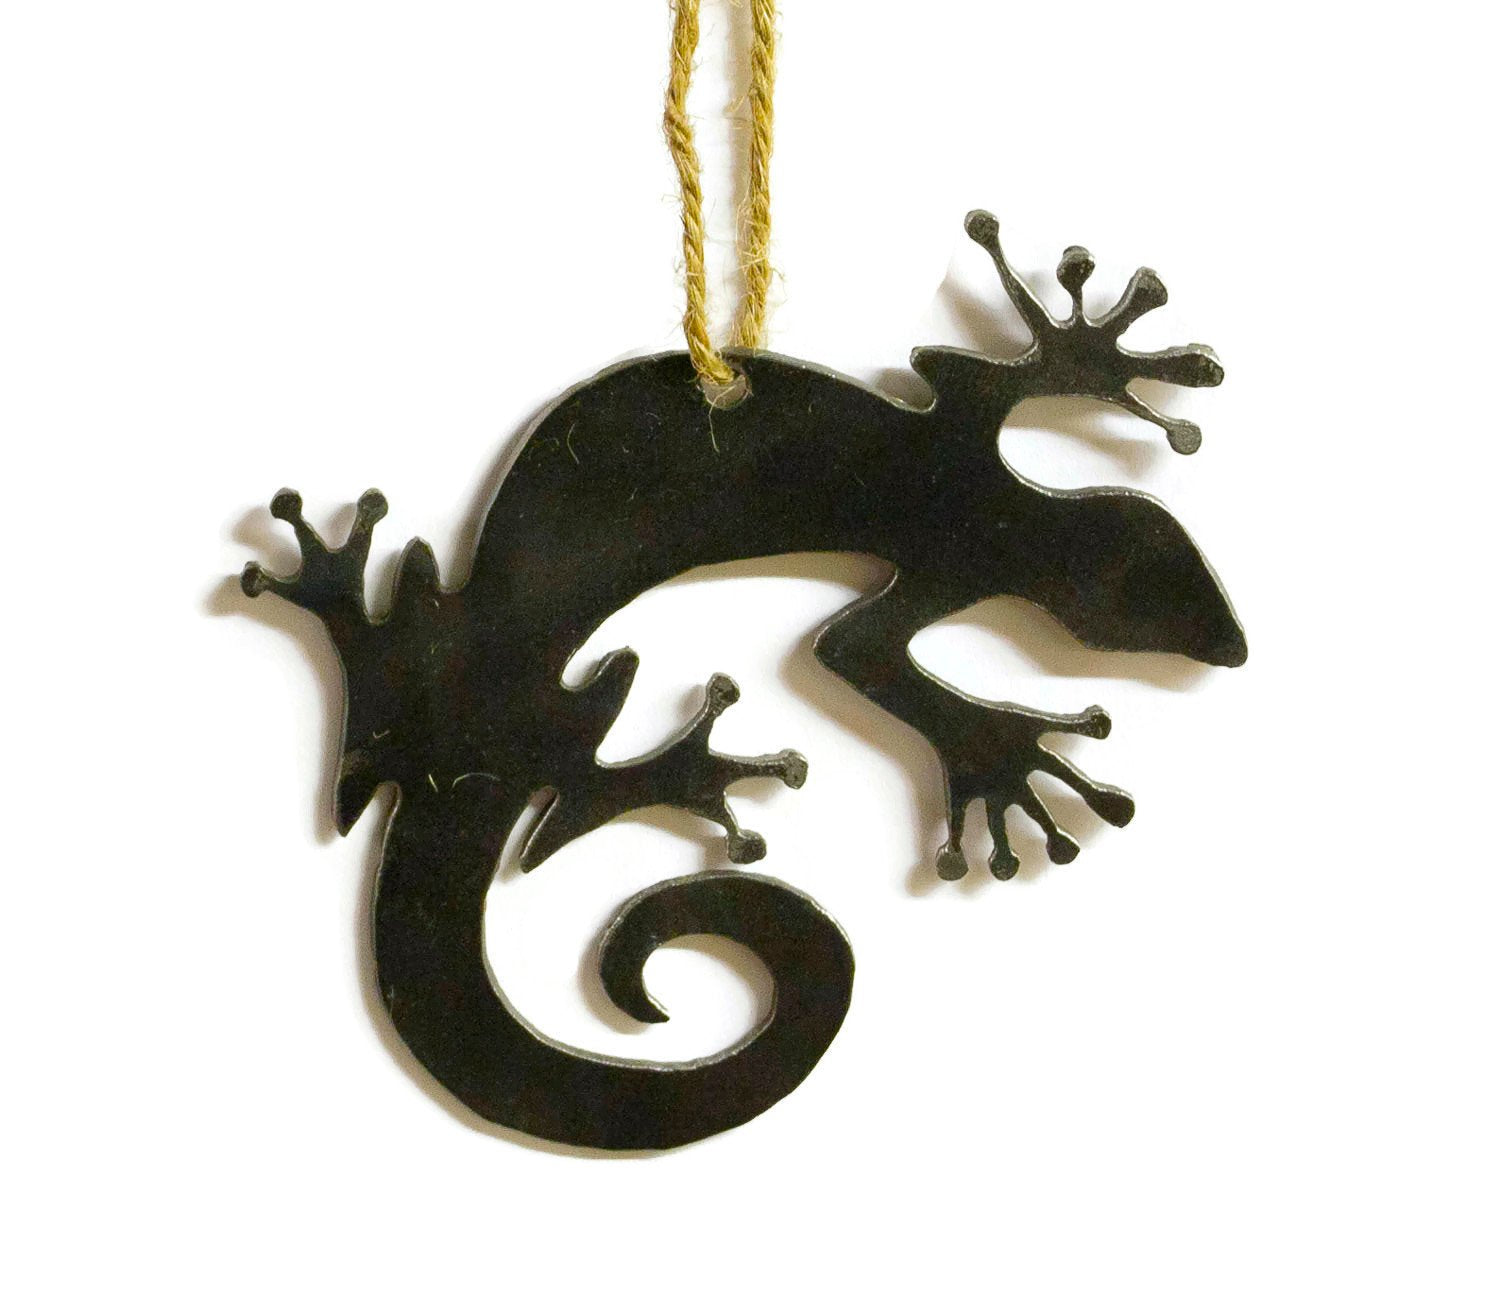 Lizard Metal Christmas Tree Ornament Holiday Decoration Raw Steel Gift Recycled Nature Home Decor